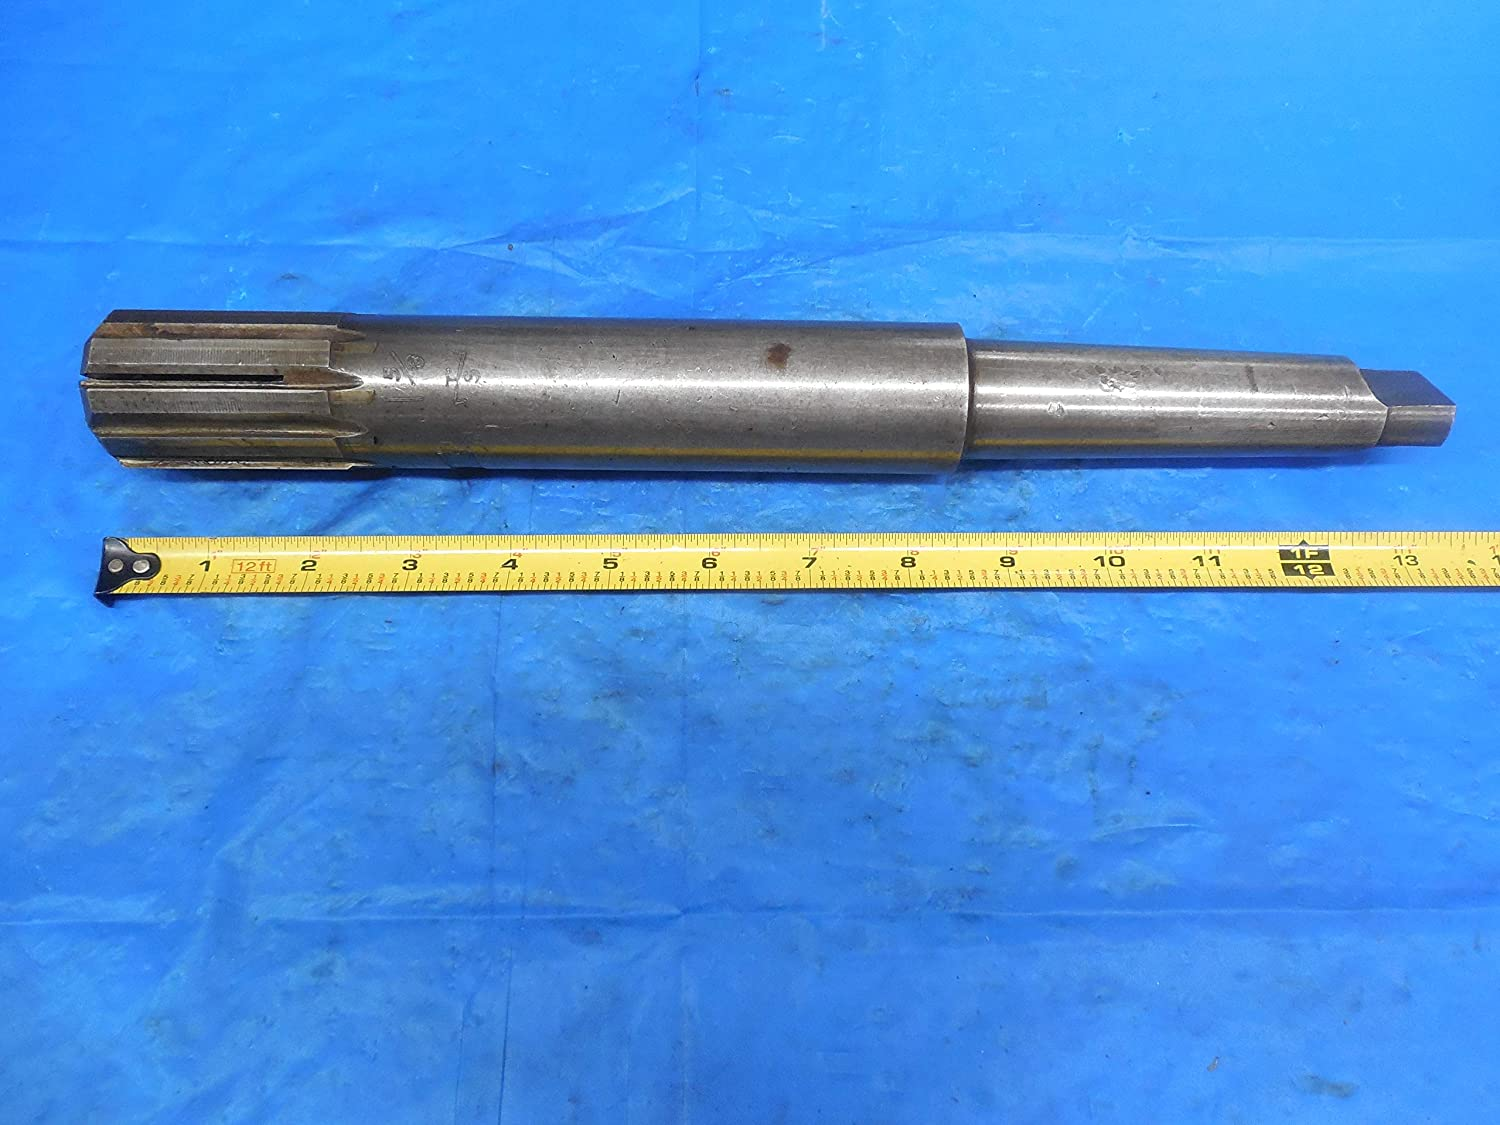 1 5//8 Dia Carbide Flute Expansion Reamer with Morse Taper # 4 Shank 1.6250